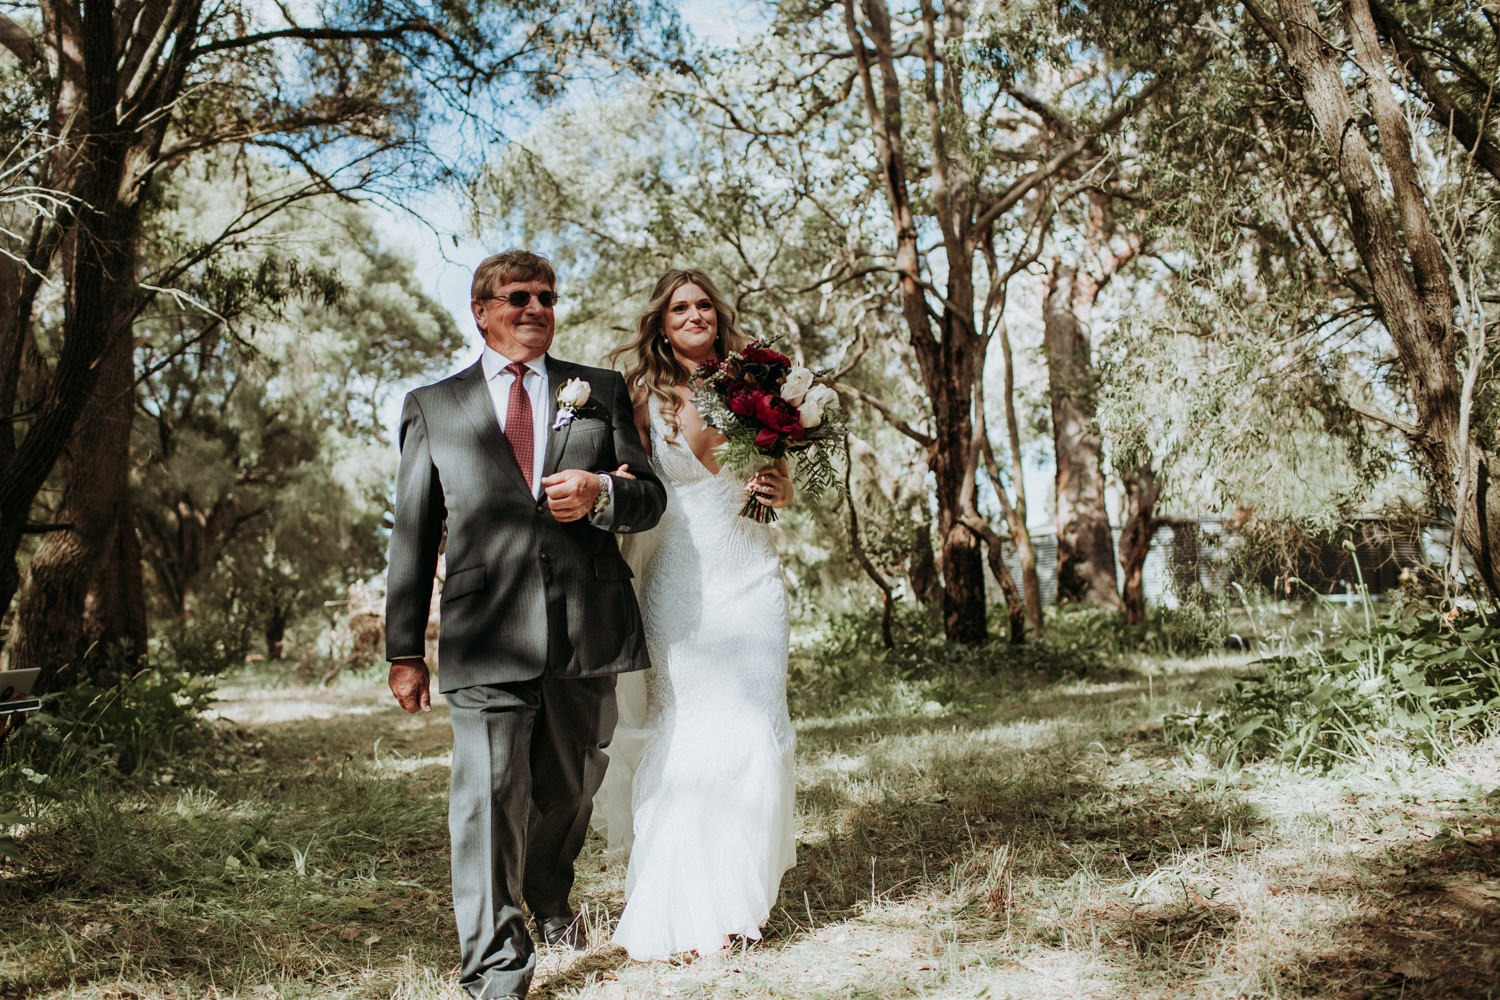 Rustic-Eclectic-Byron-Bay-Wedding-Ceremony- Bride walking down the aisle